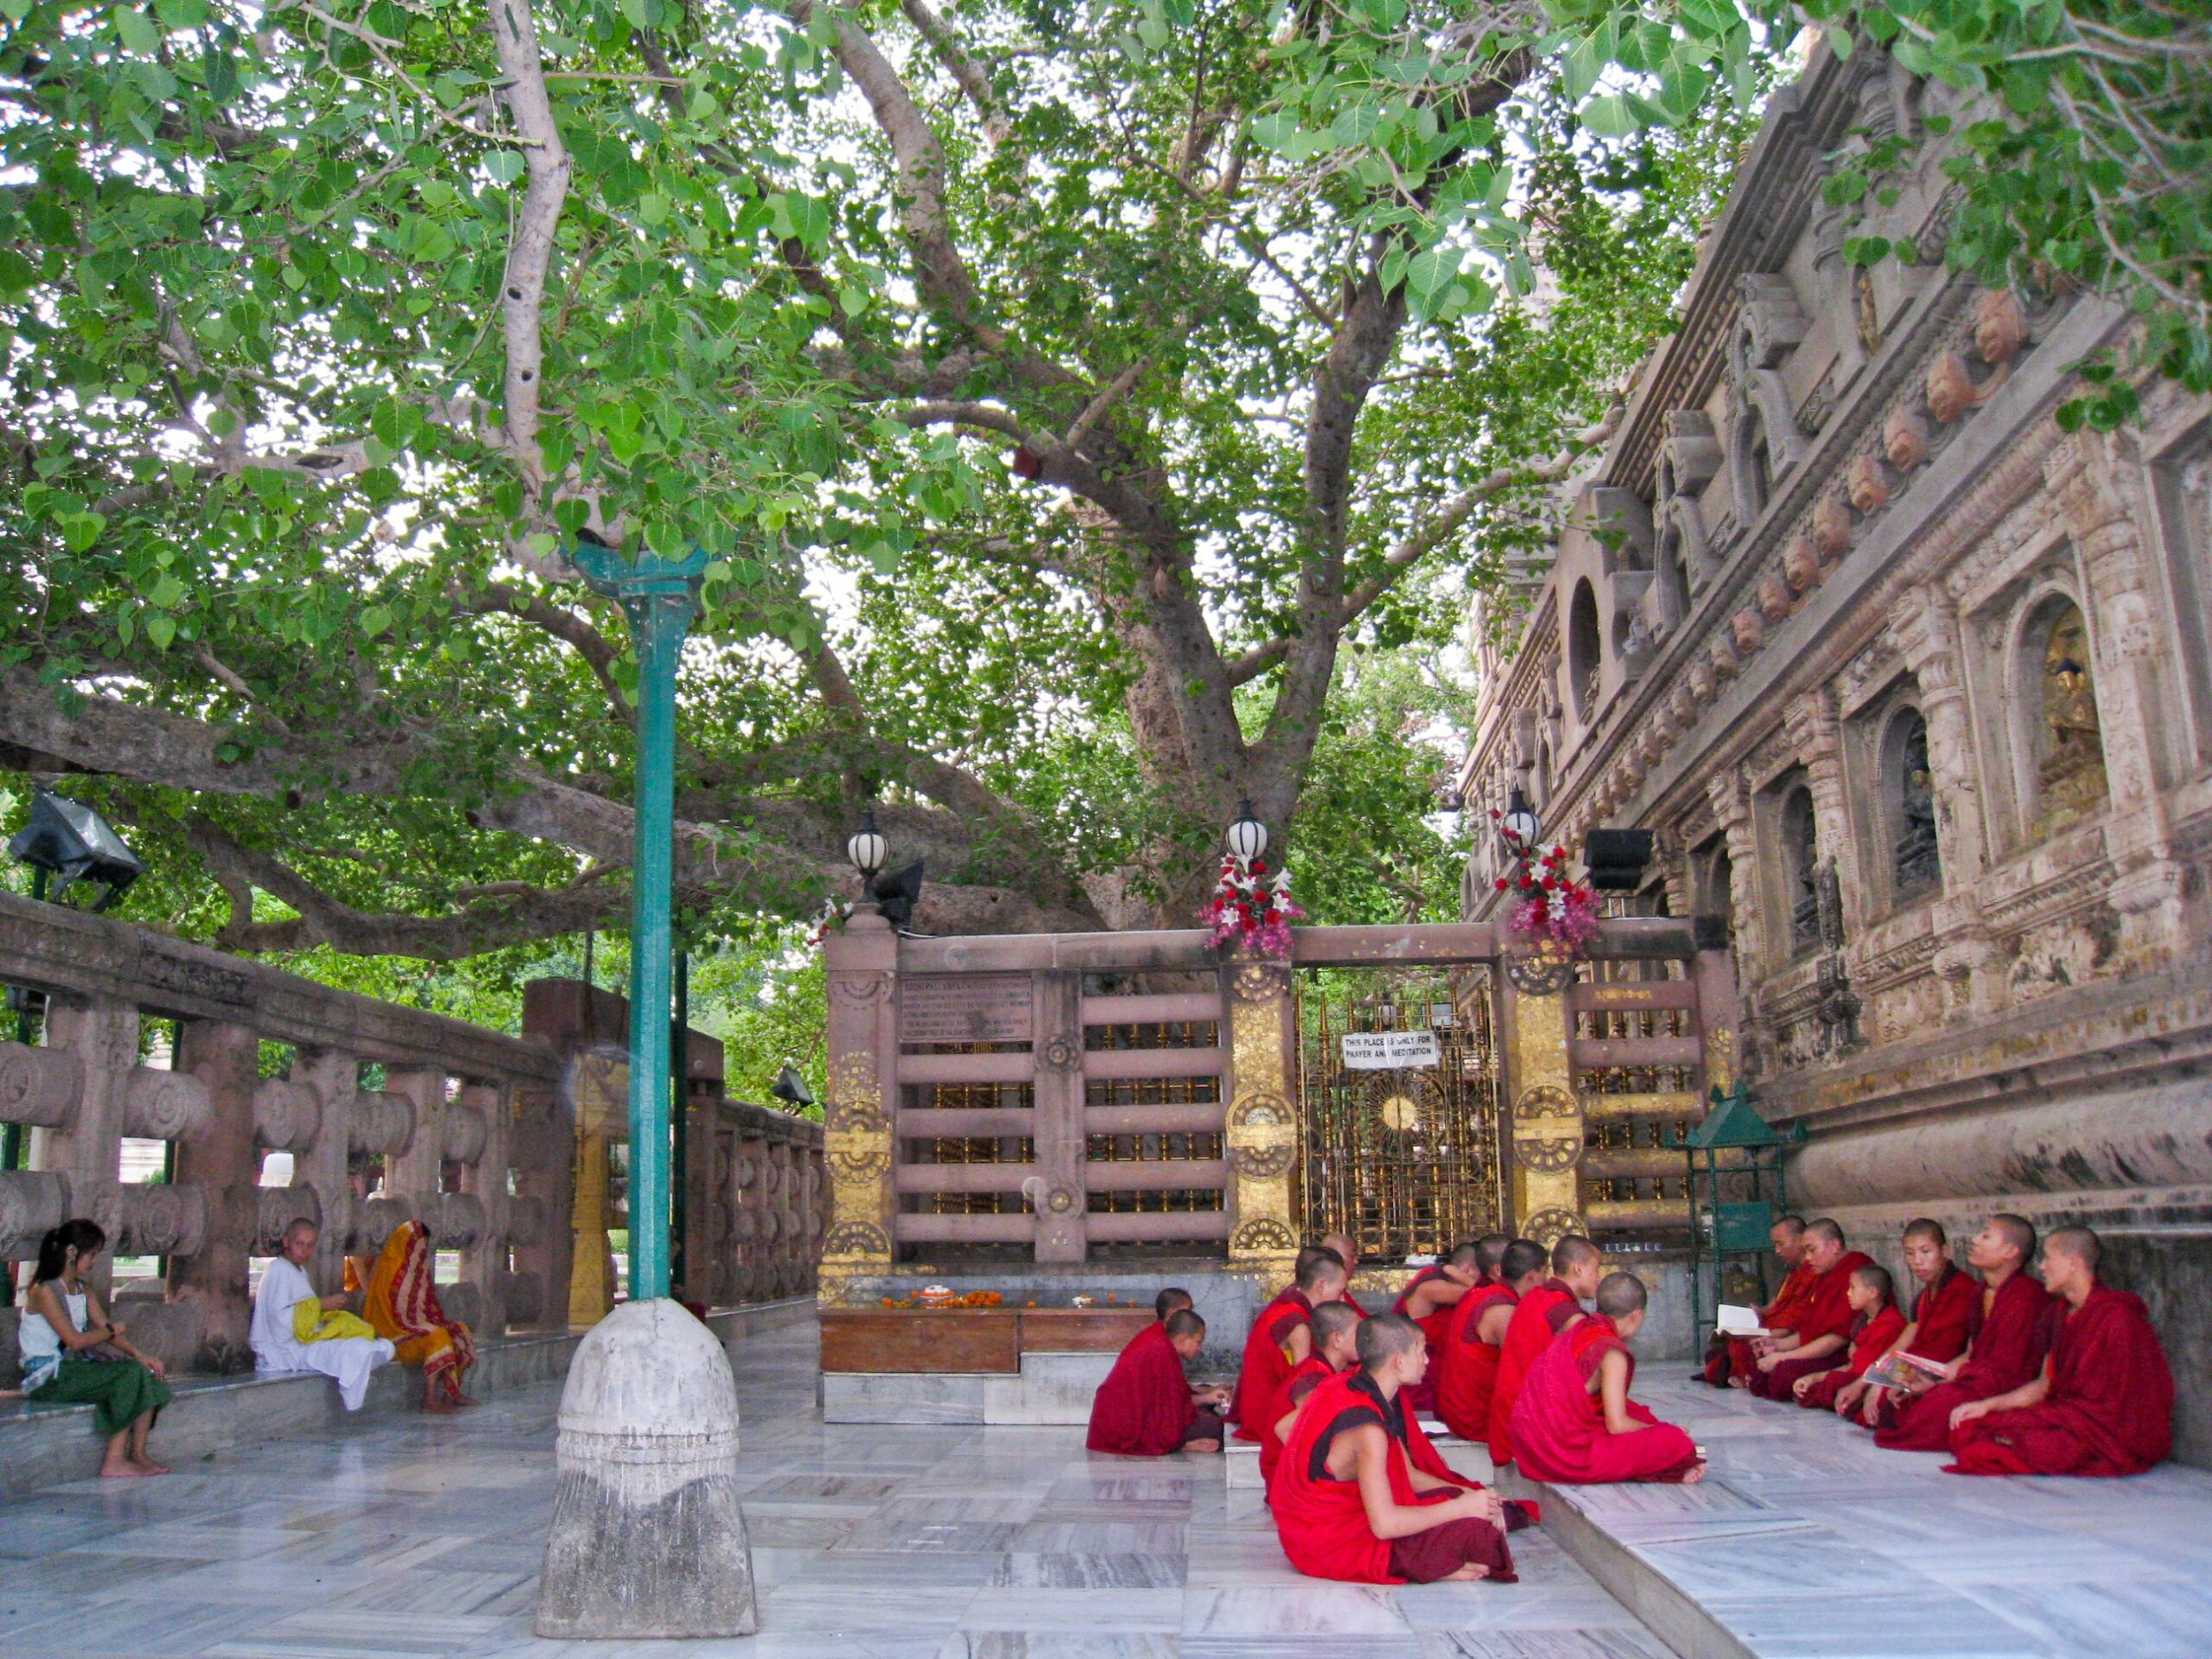 The Bodhi Tree is an important Buddhist spiritual site in India.